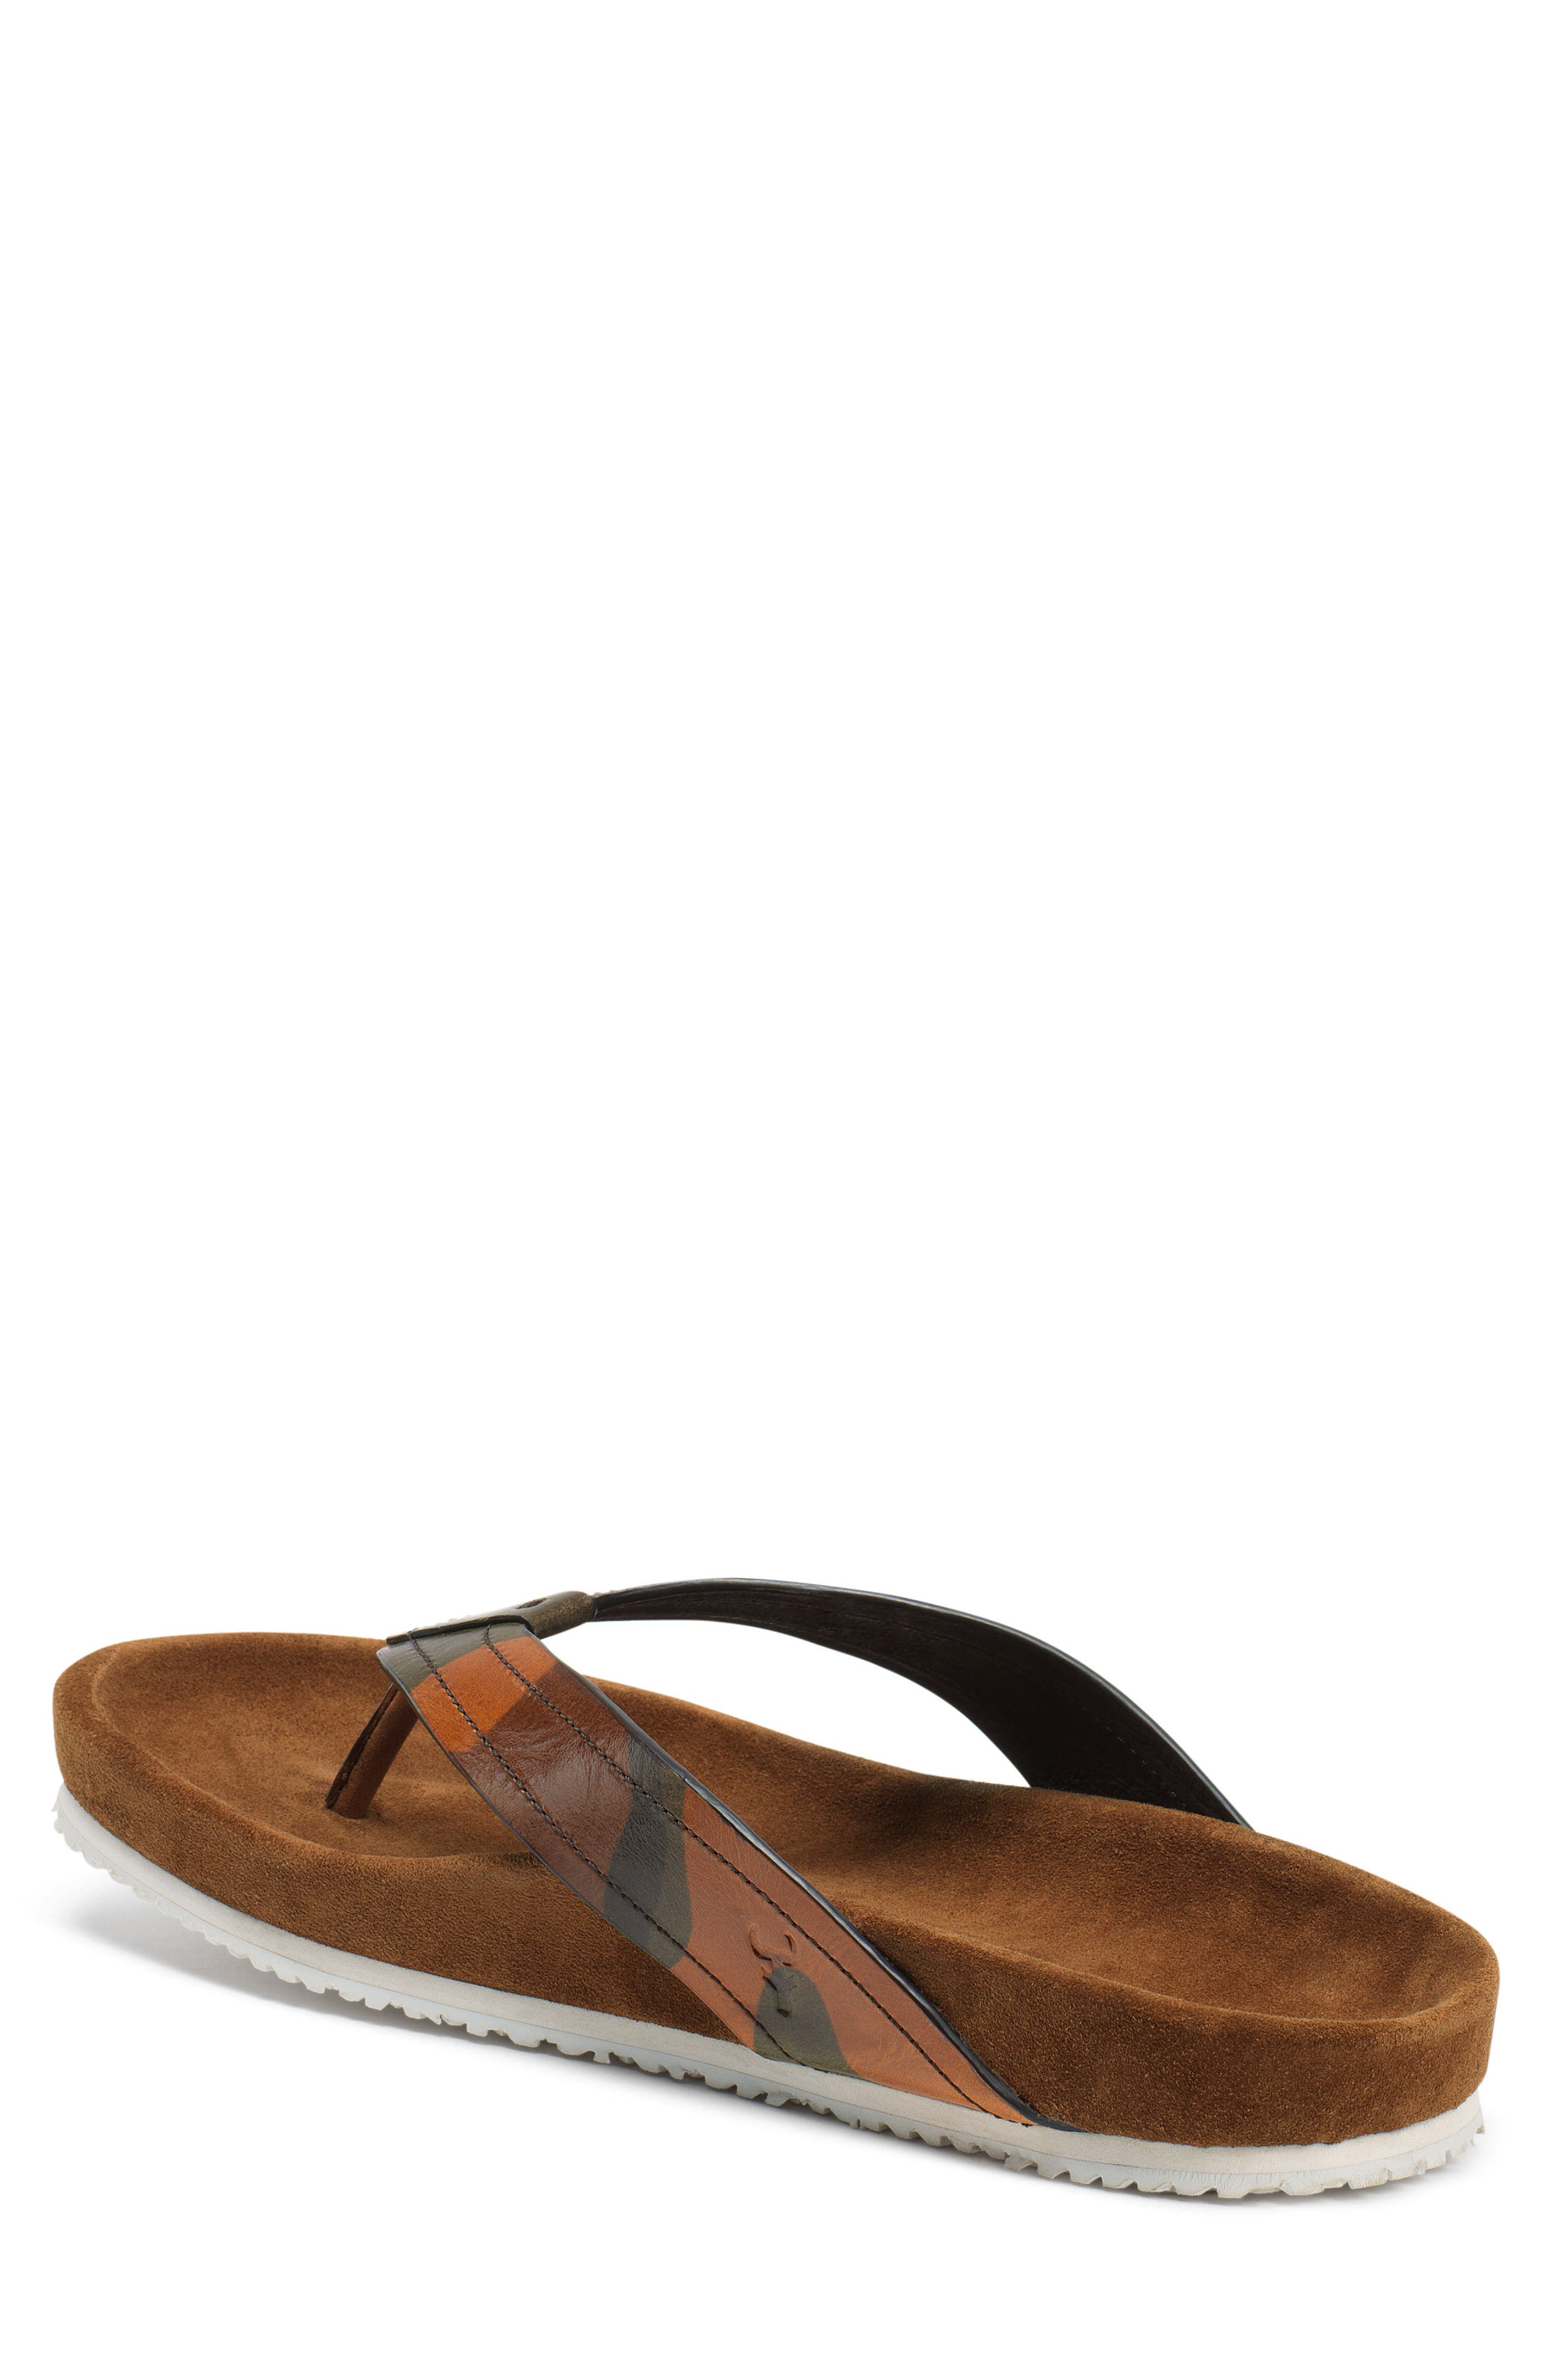 Fleming Flip Flop,                             Alternate thumbnail 2, color,                             CAMOFLAGE LEATHER